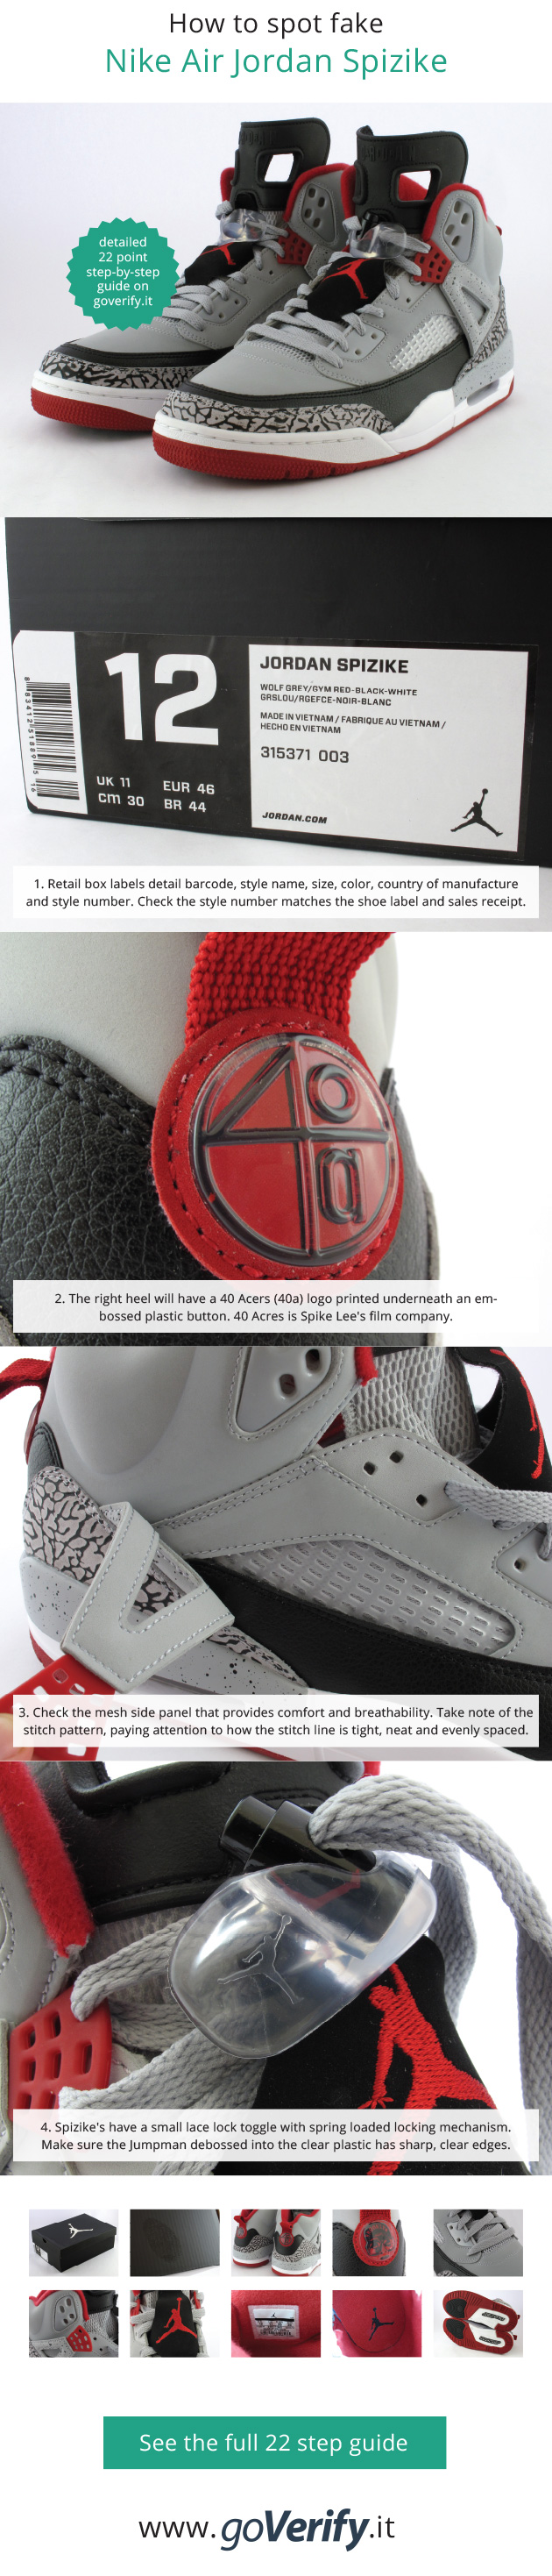 efd00ea025d How to spot fake Nike Air Jordan Spizike's, go to www.goverify.it ...